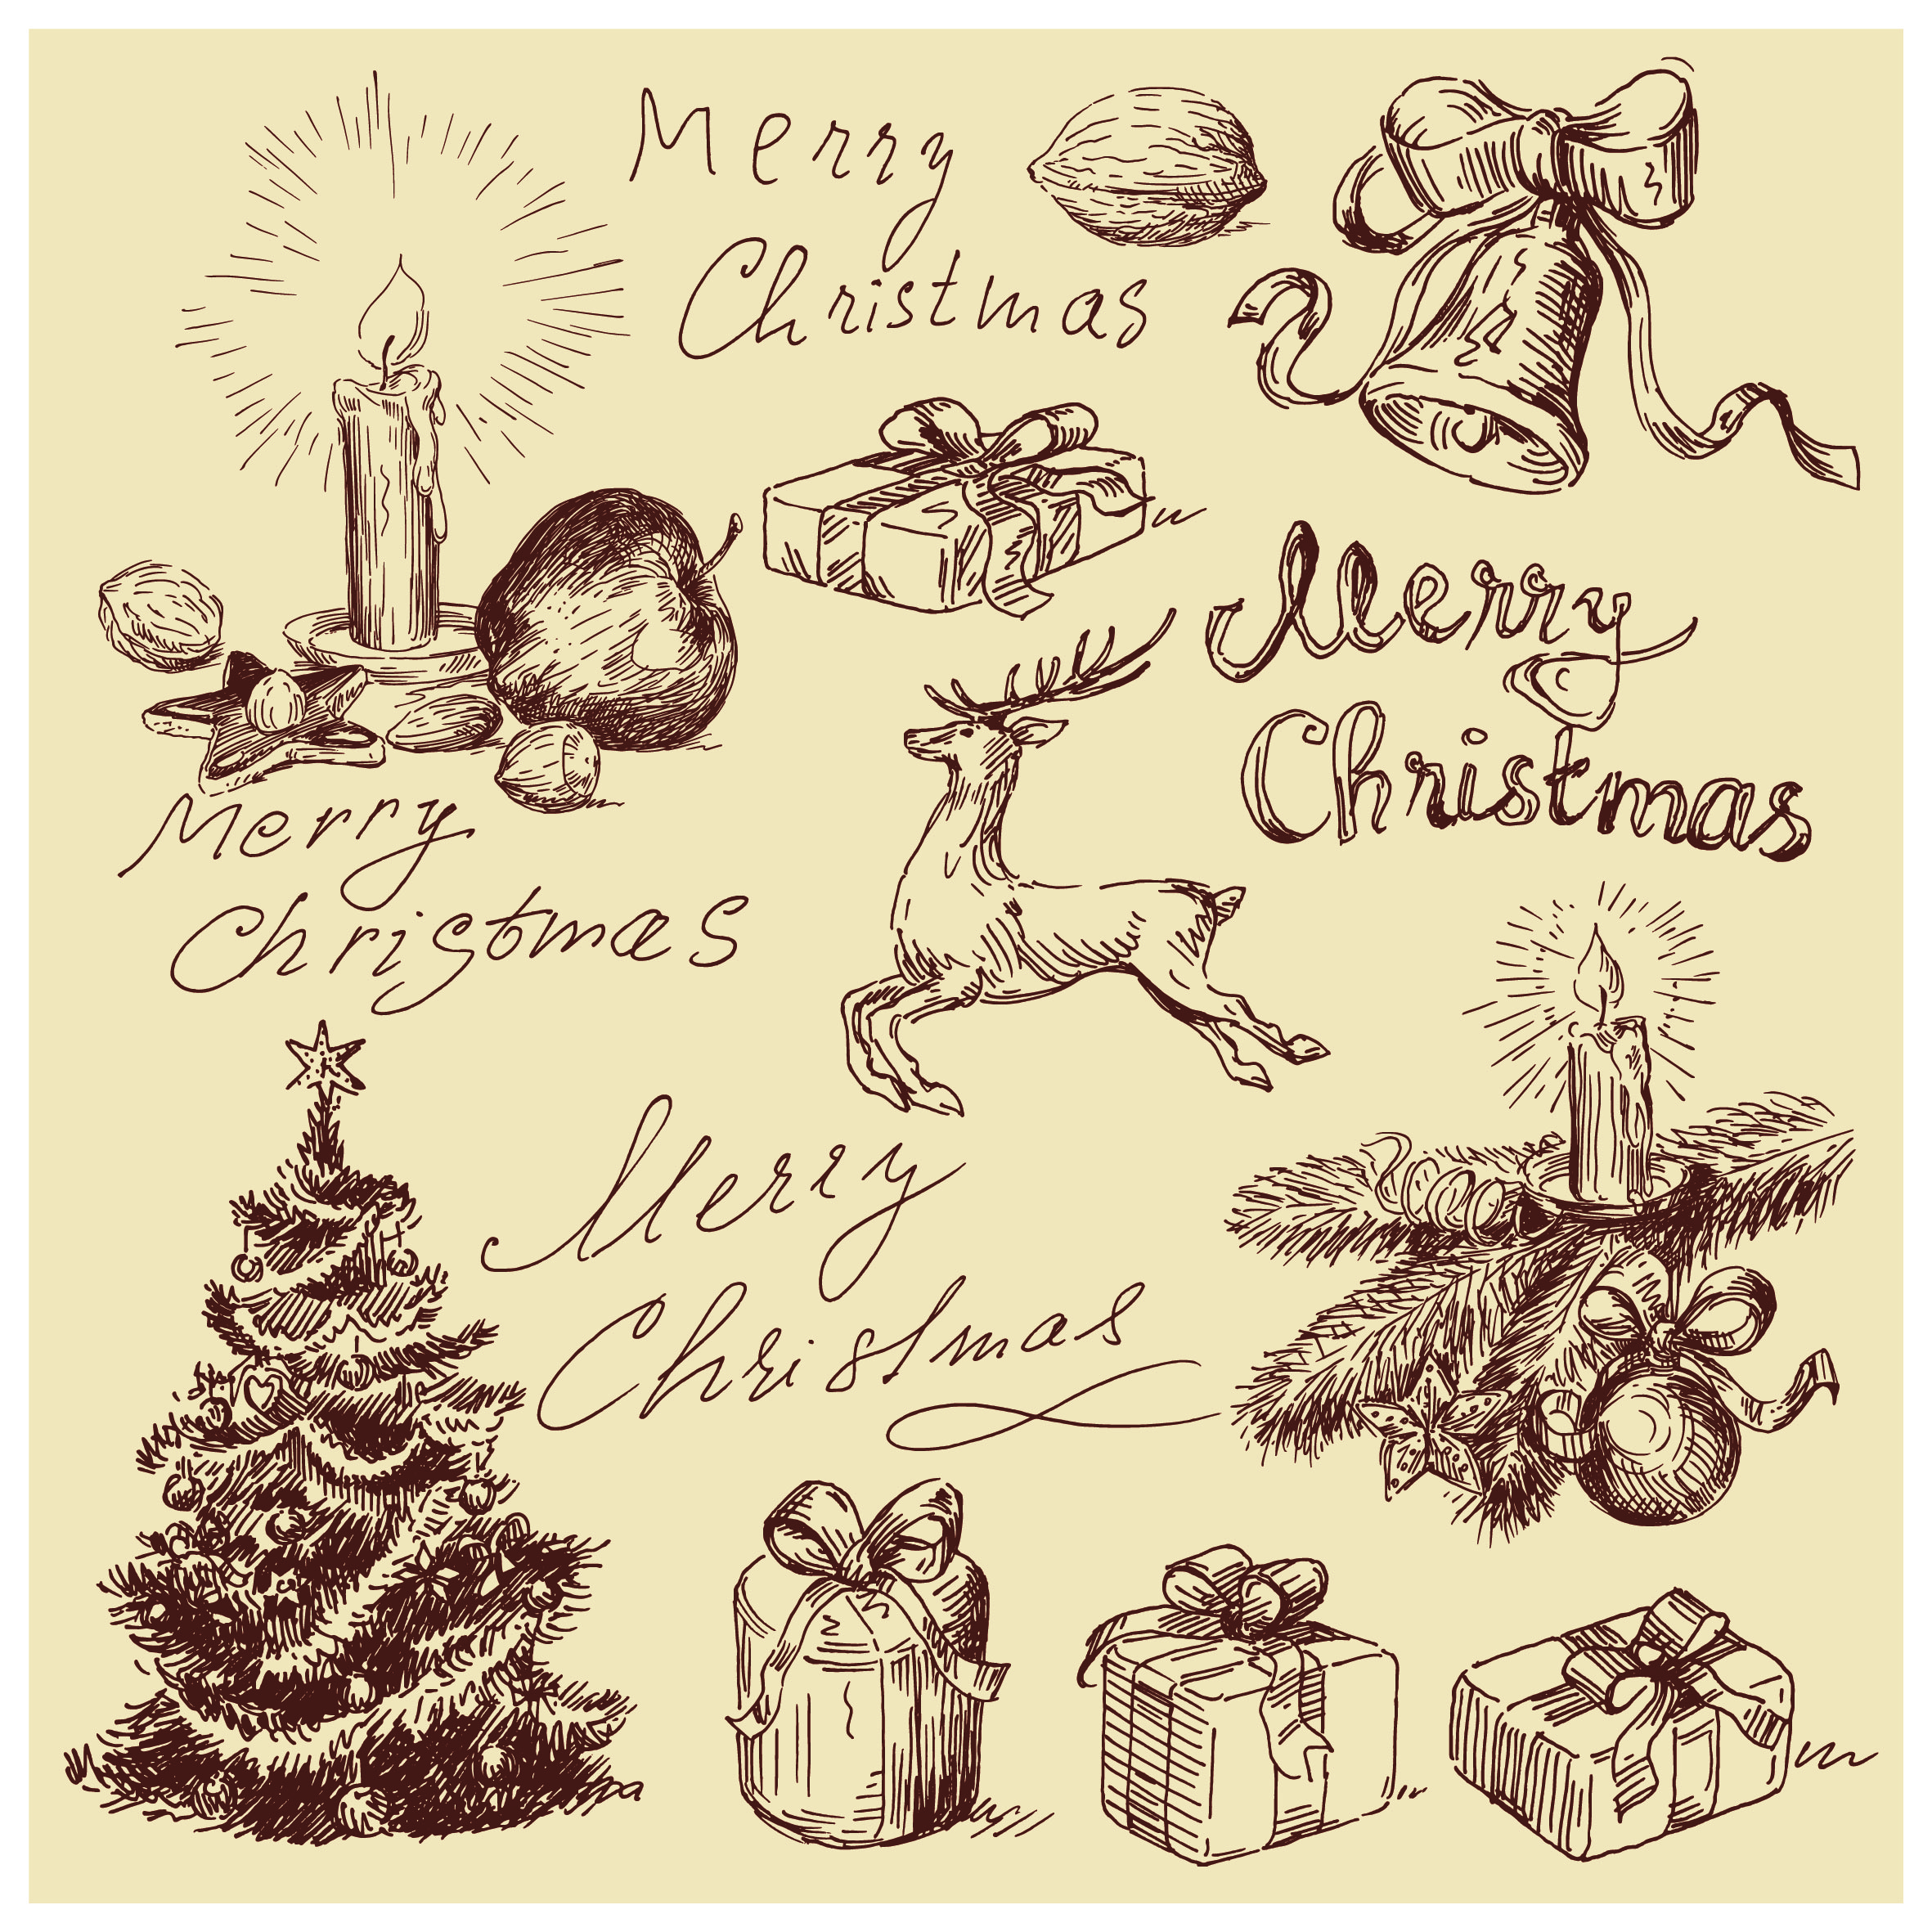 10 Free Vintage Christmas Vector Designs Images - Merry Christmas, Vintage Ch...